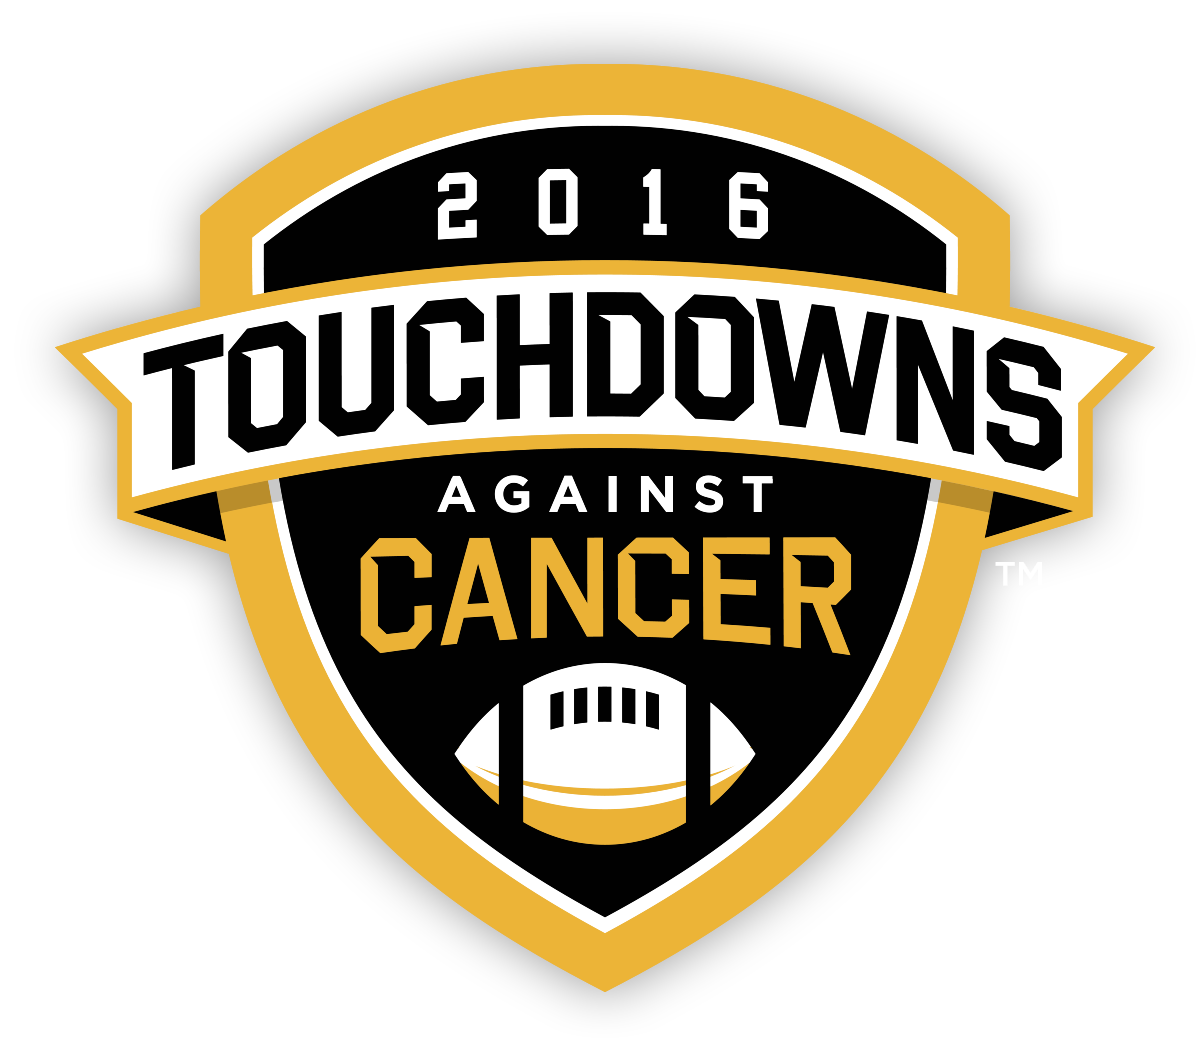 logo-for-tds-against-cancer